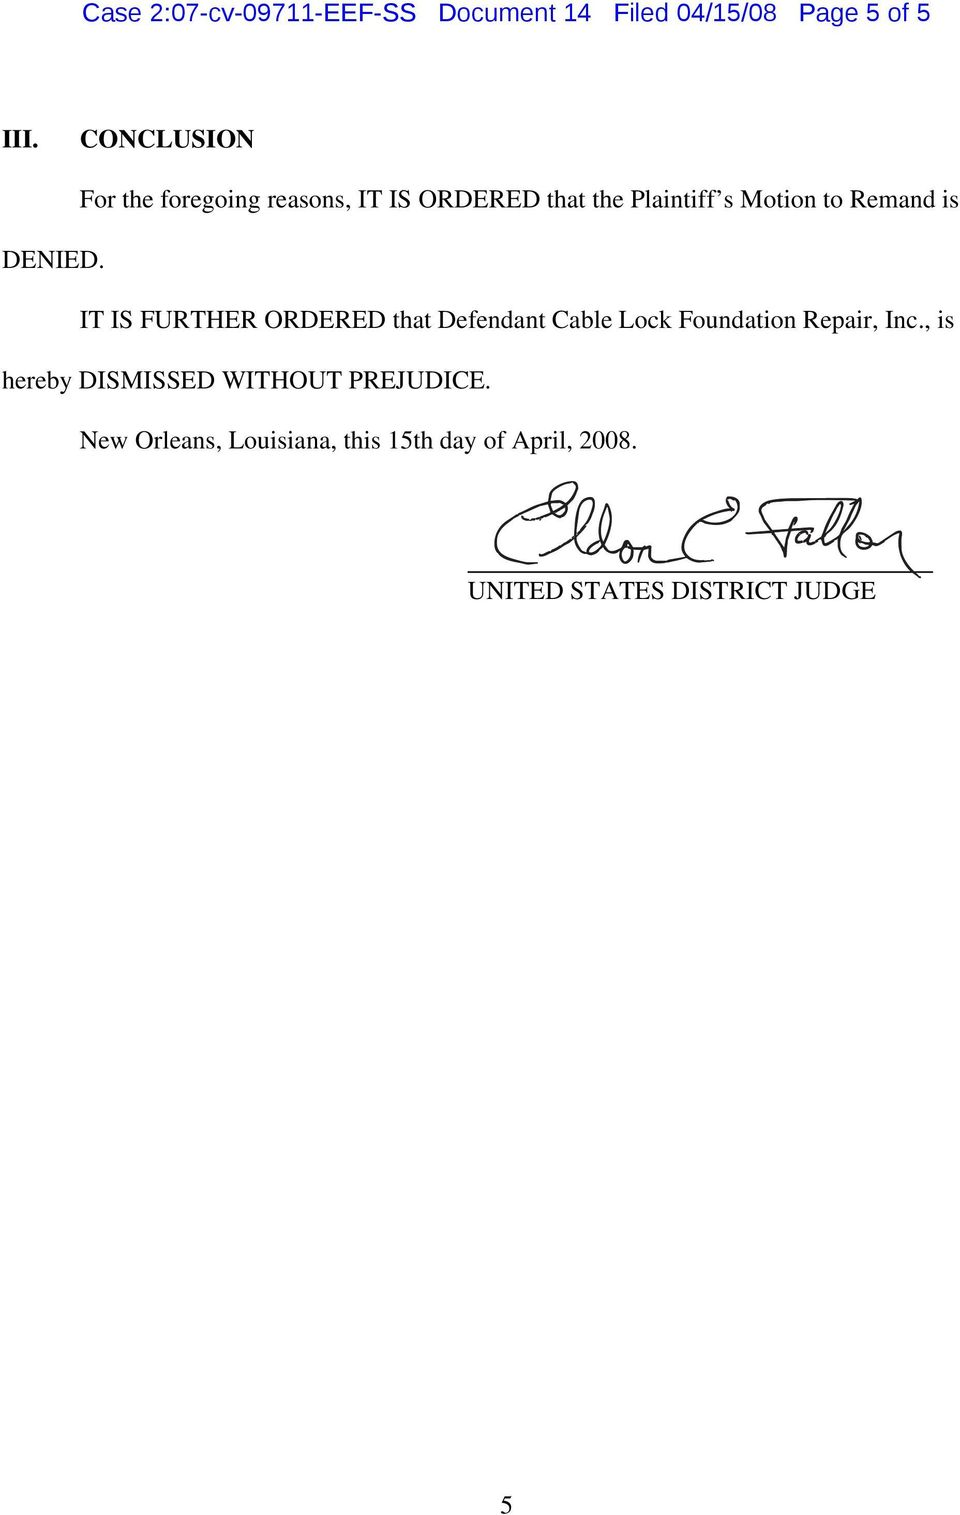 is DENIED. IT IS FURTHER ORDERED that Defendant Cable Lock Foundation Repair, Inc.